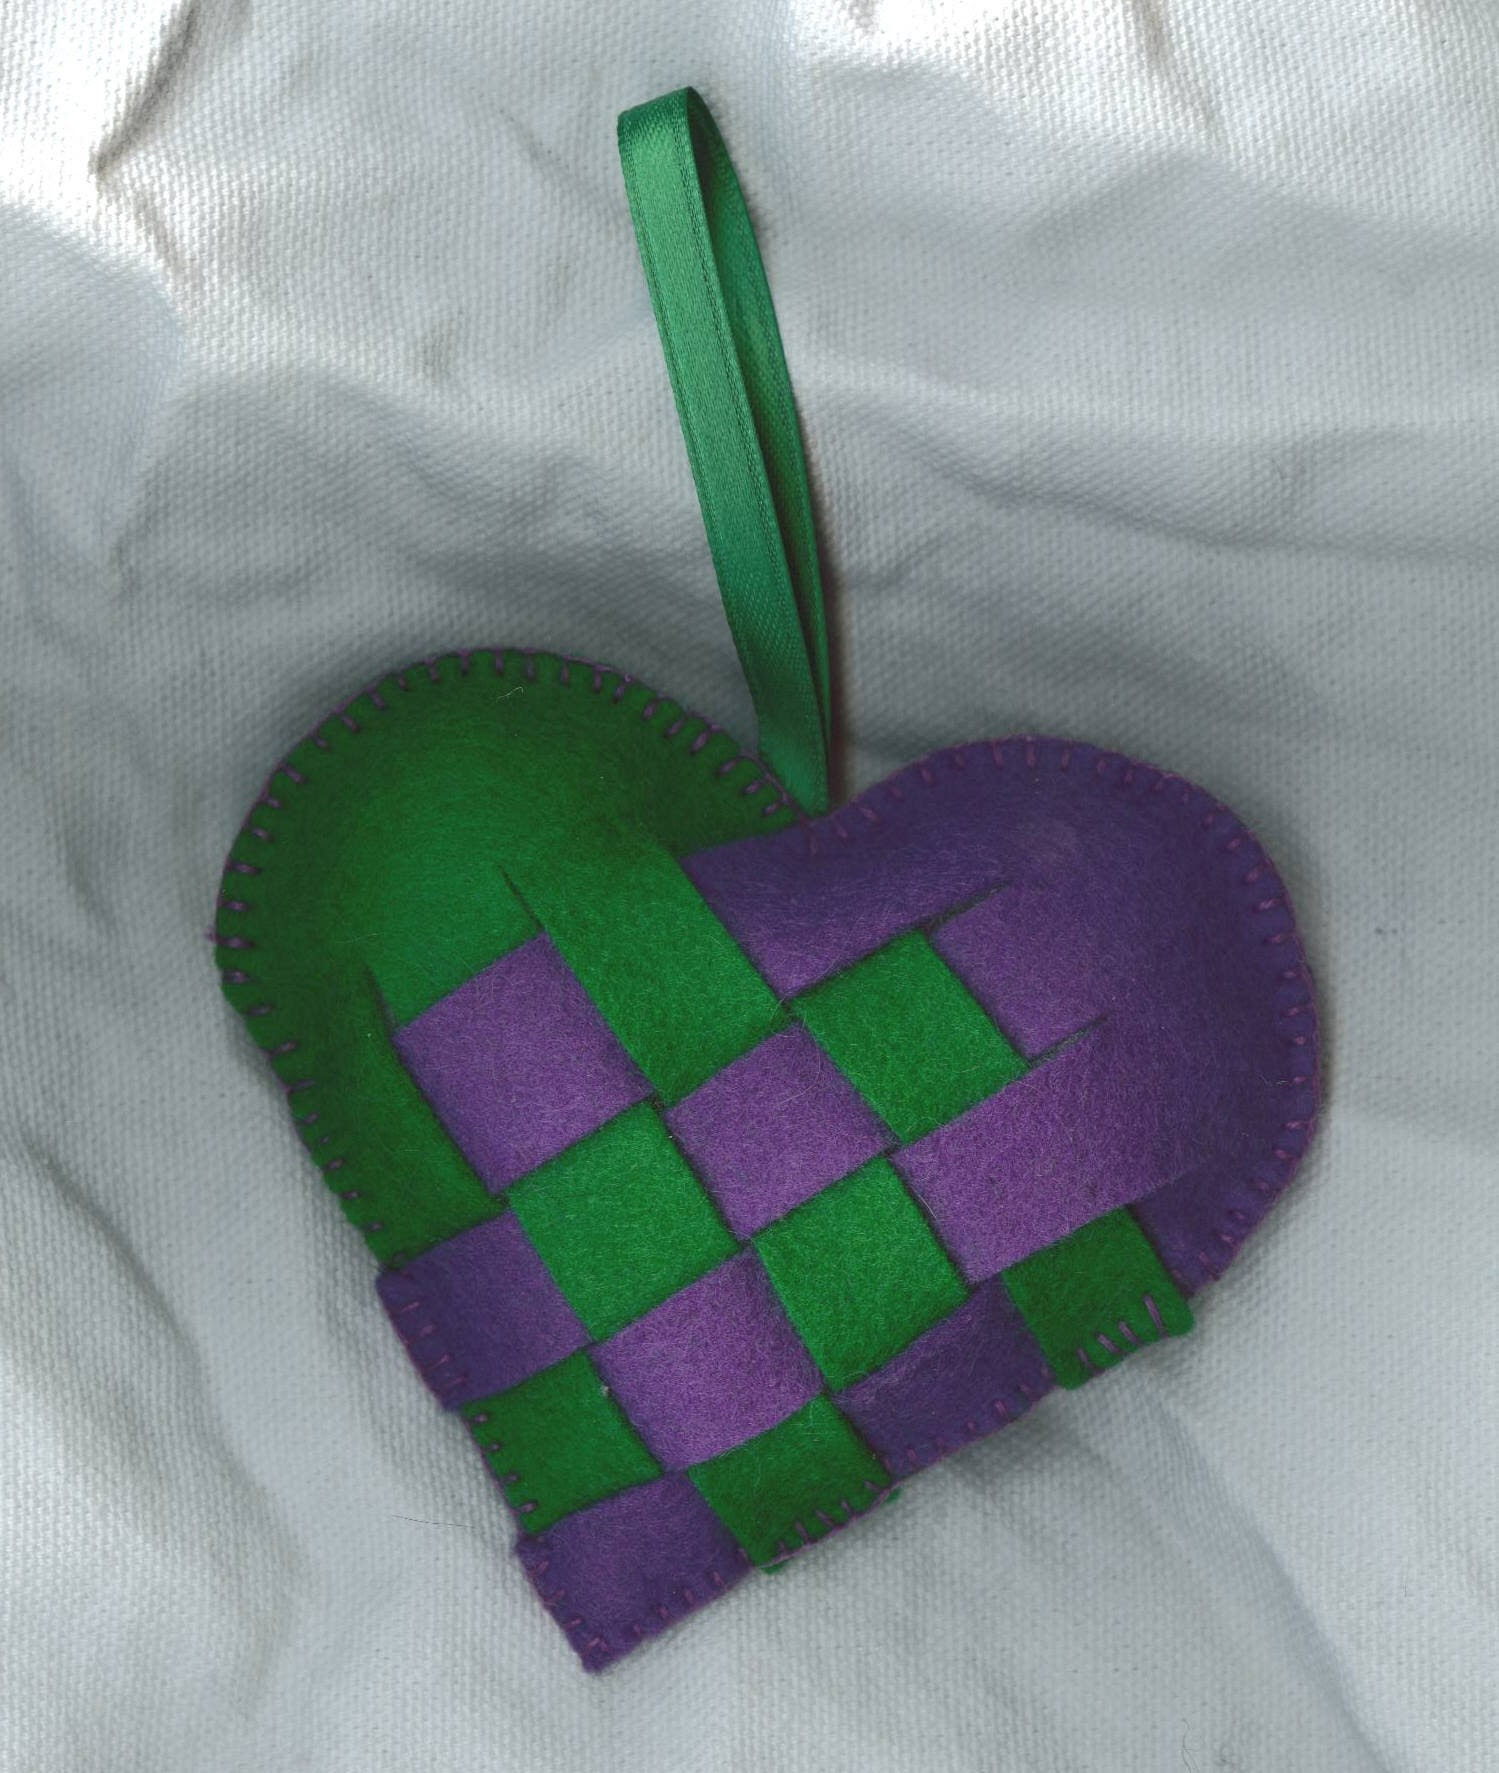 Purple and Green Woven Heart - Swedish and Danish Inspired Design - Home Decor or Ornament - Naturalkids Etsymom Team MN and SHE Team